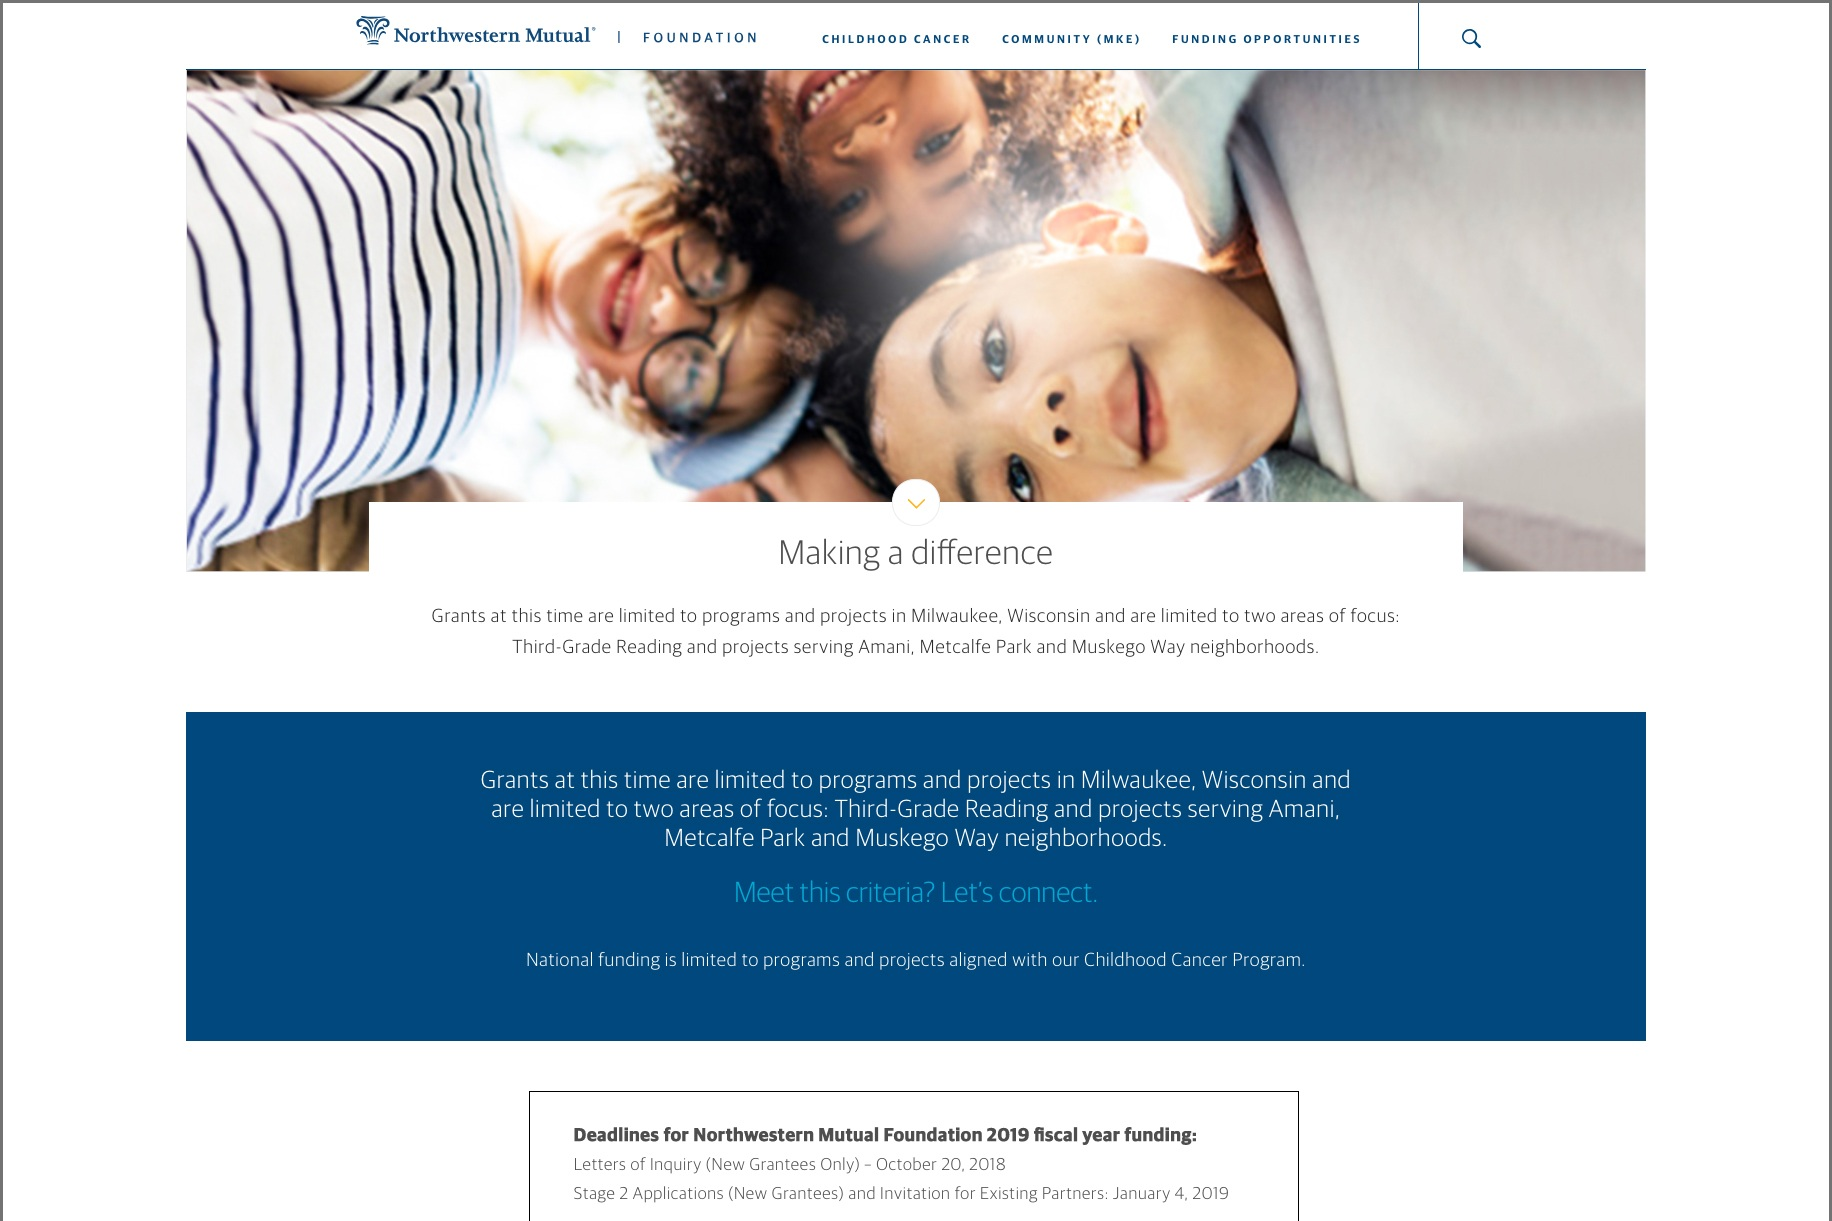 Web page for the Northwestern Mutual Foundation site